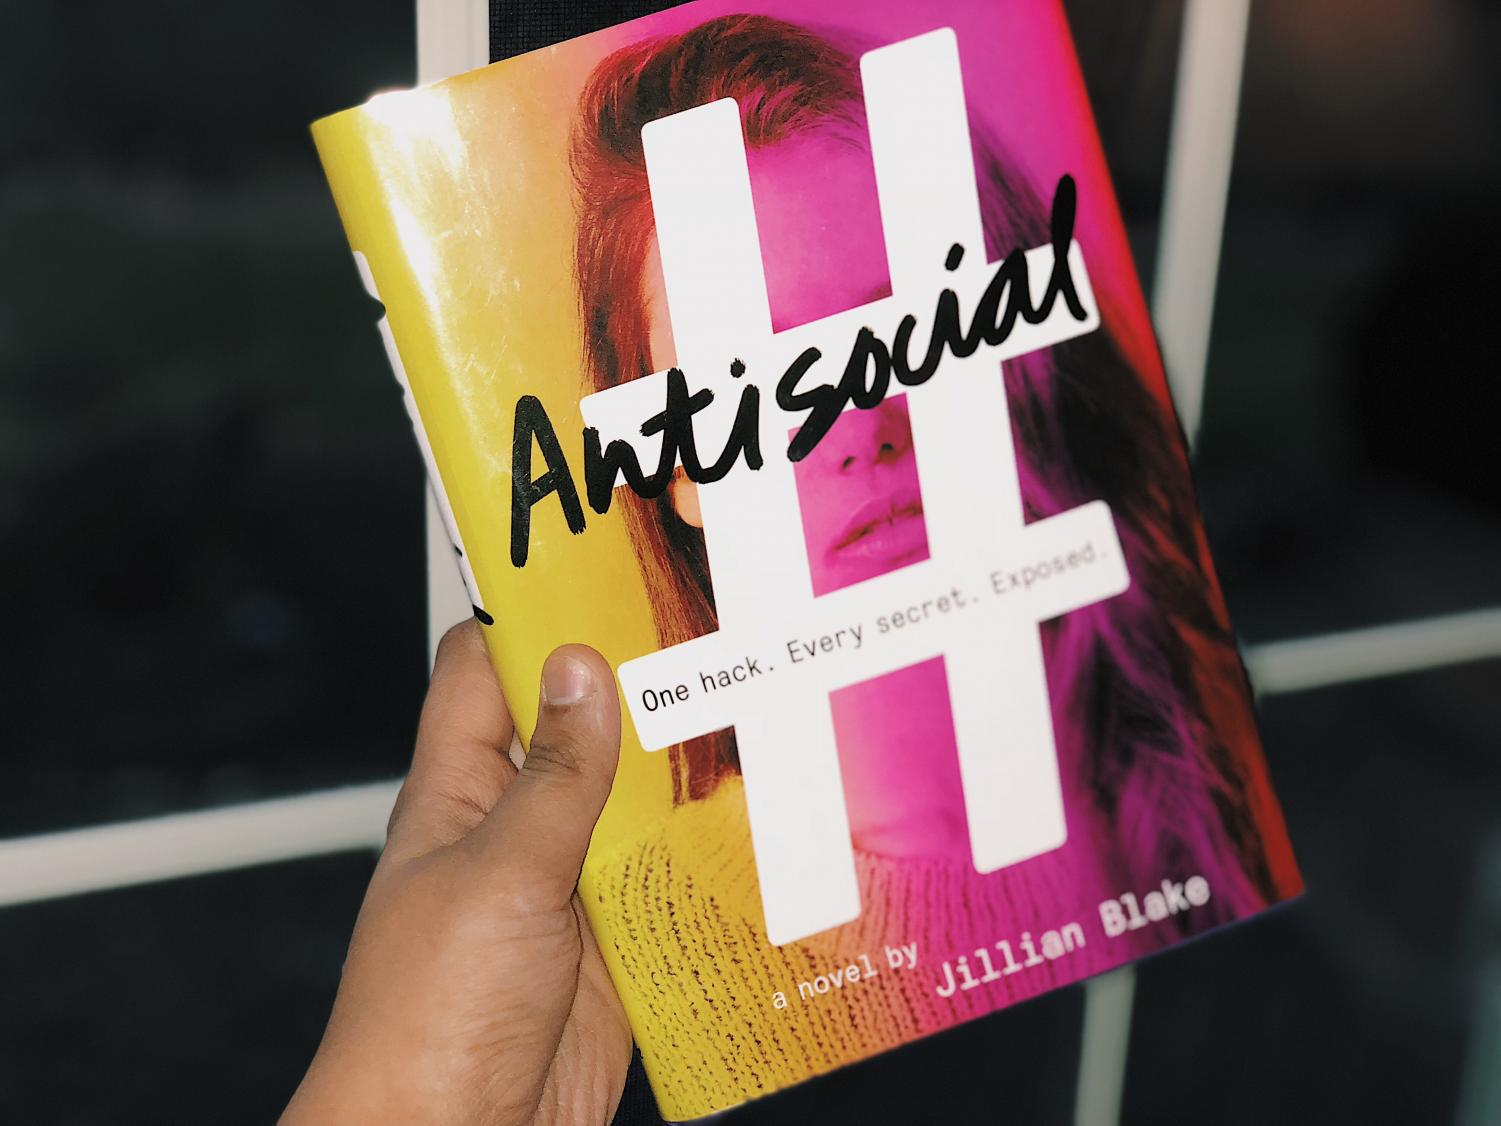 Although the book Antisocial received many positive reviews, features and editorials editor Nina Raman found the book had many imperfections.